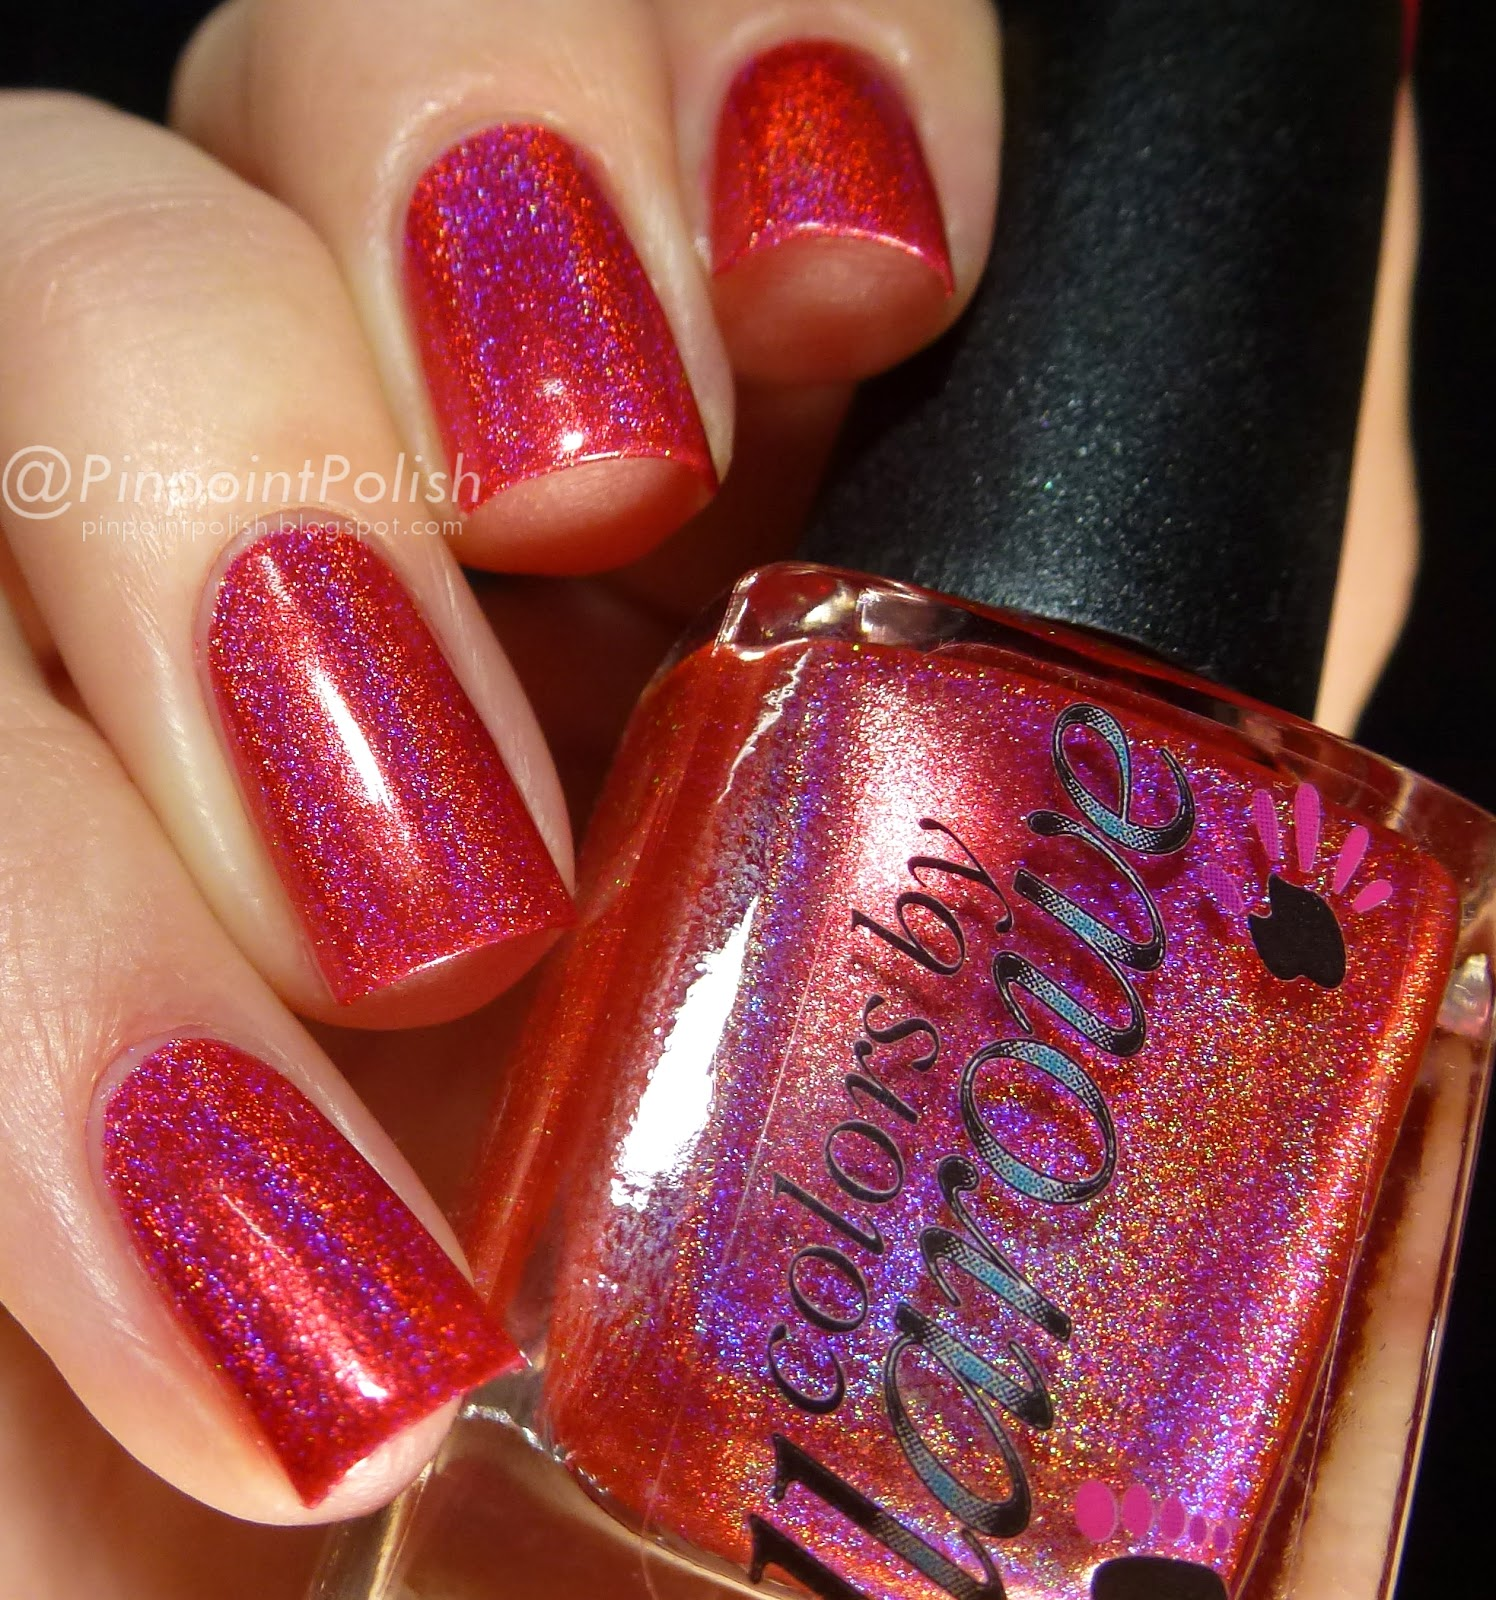 Little Red Corvette, Colors by Llarowe, swatch